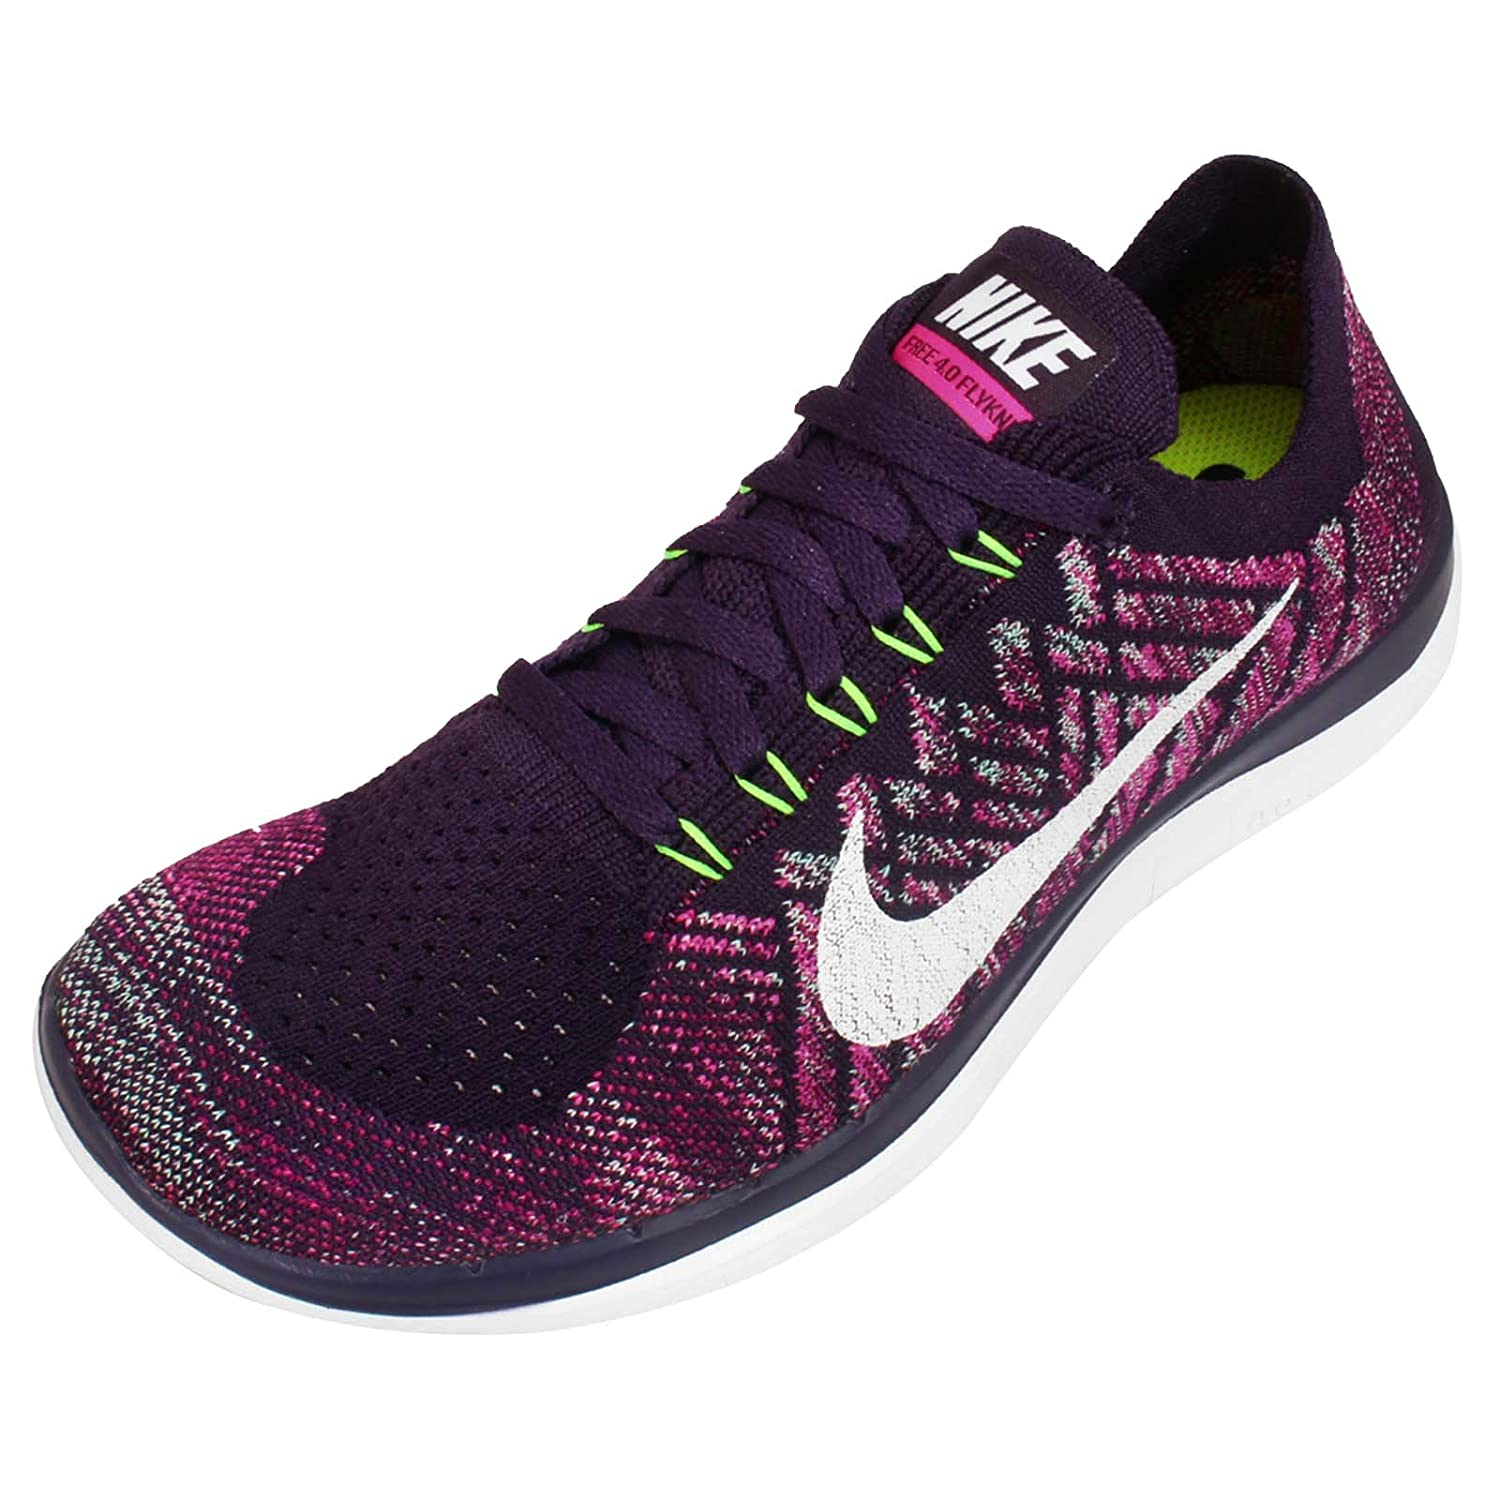 Nike Free 4.0 Flyknit Grand Nuage Violet